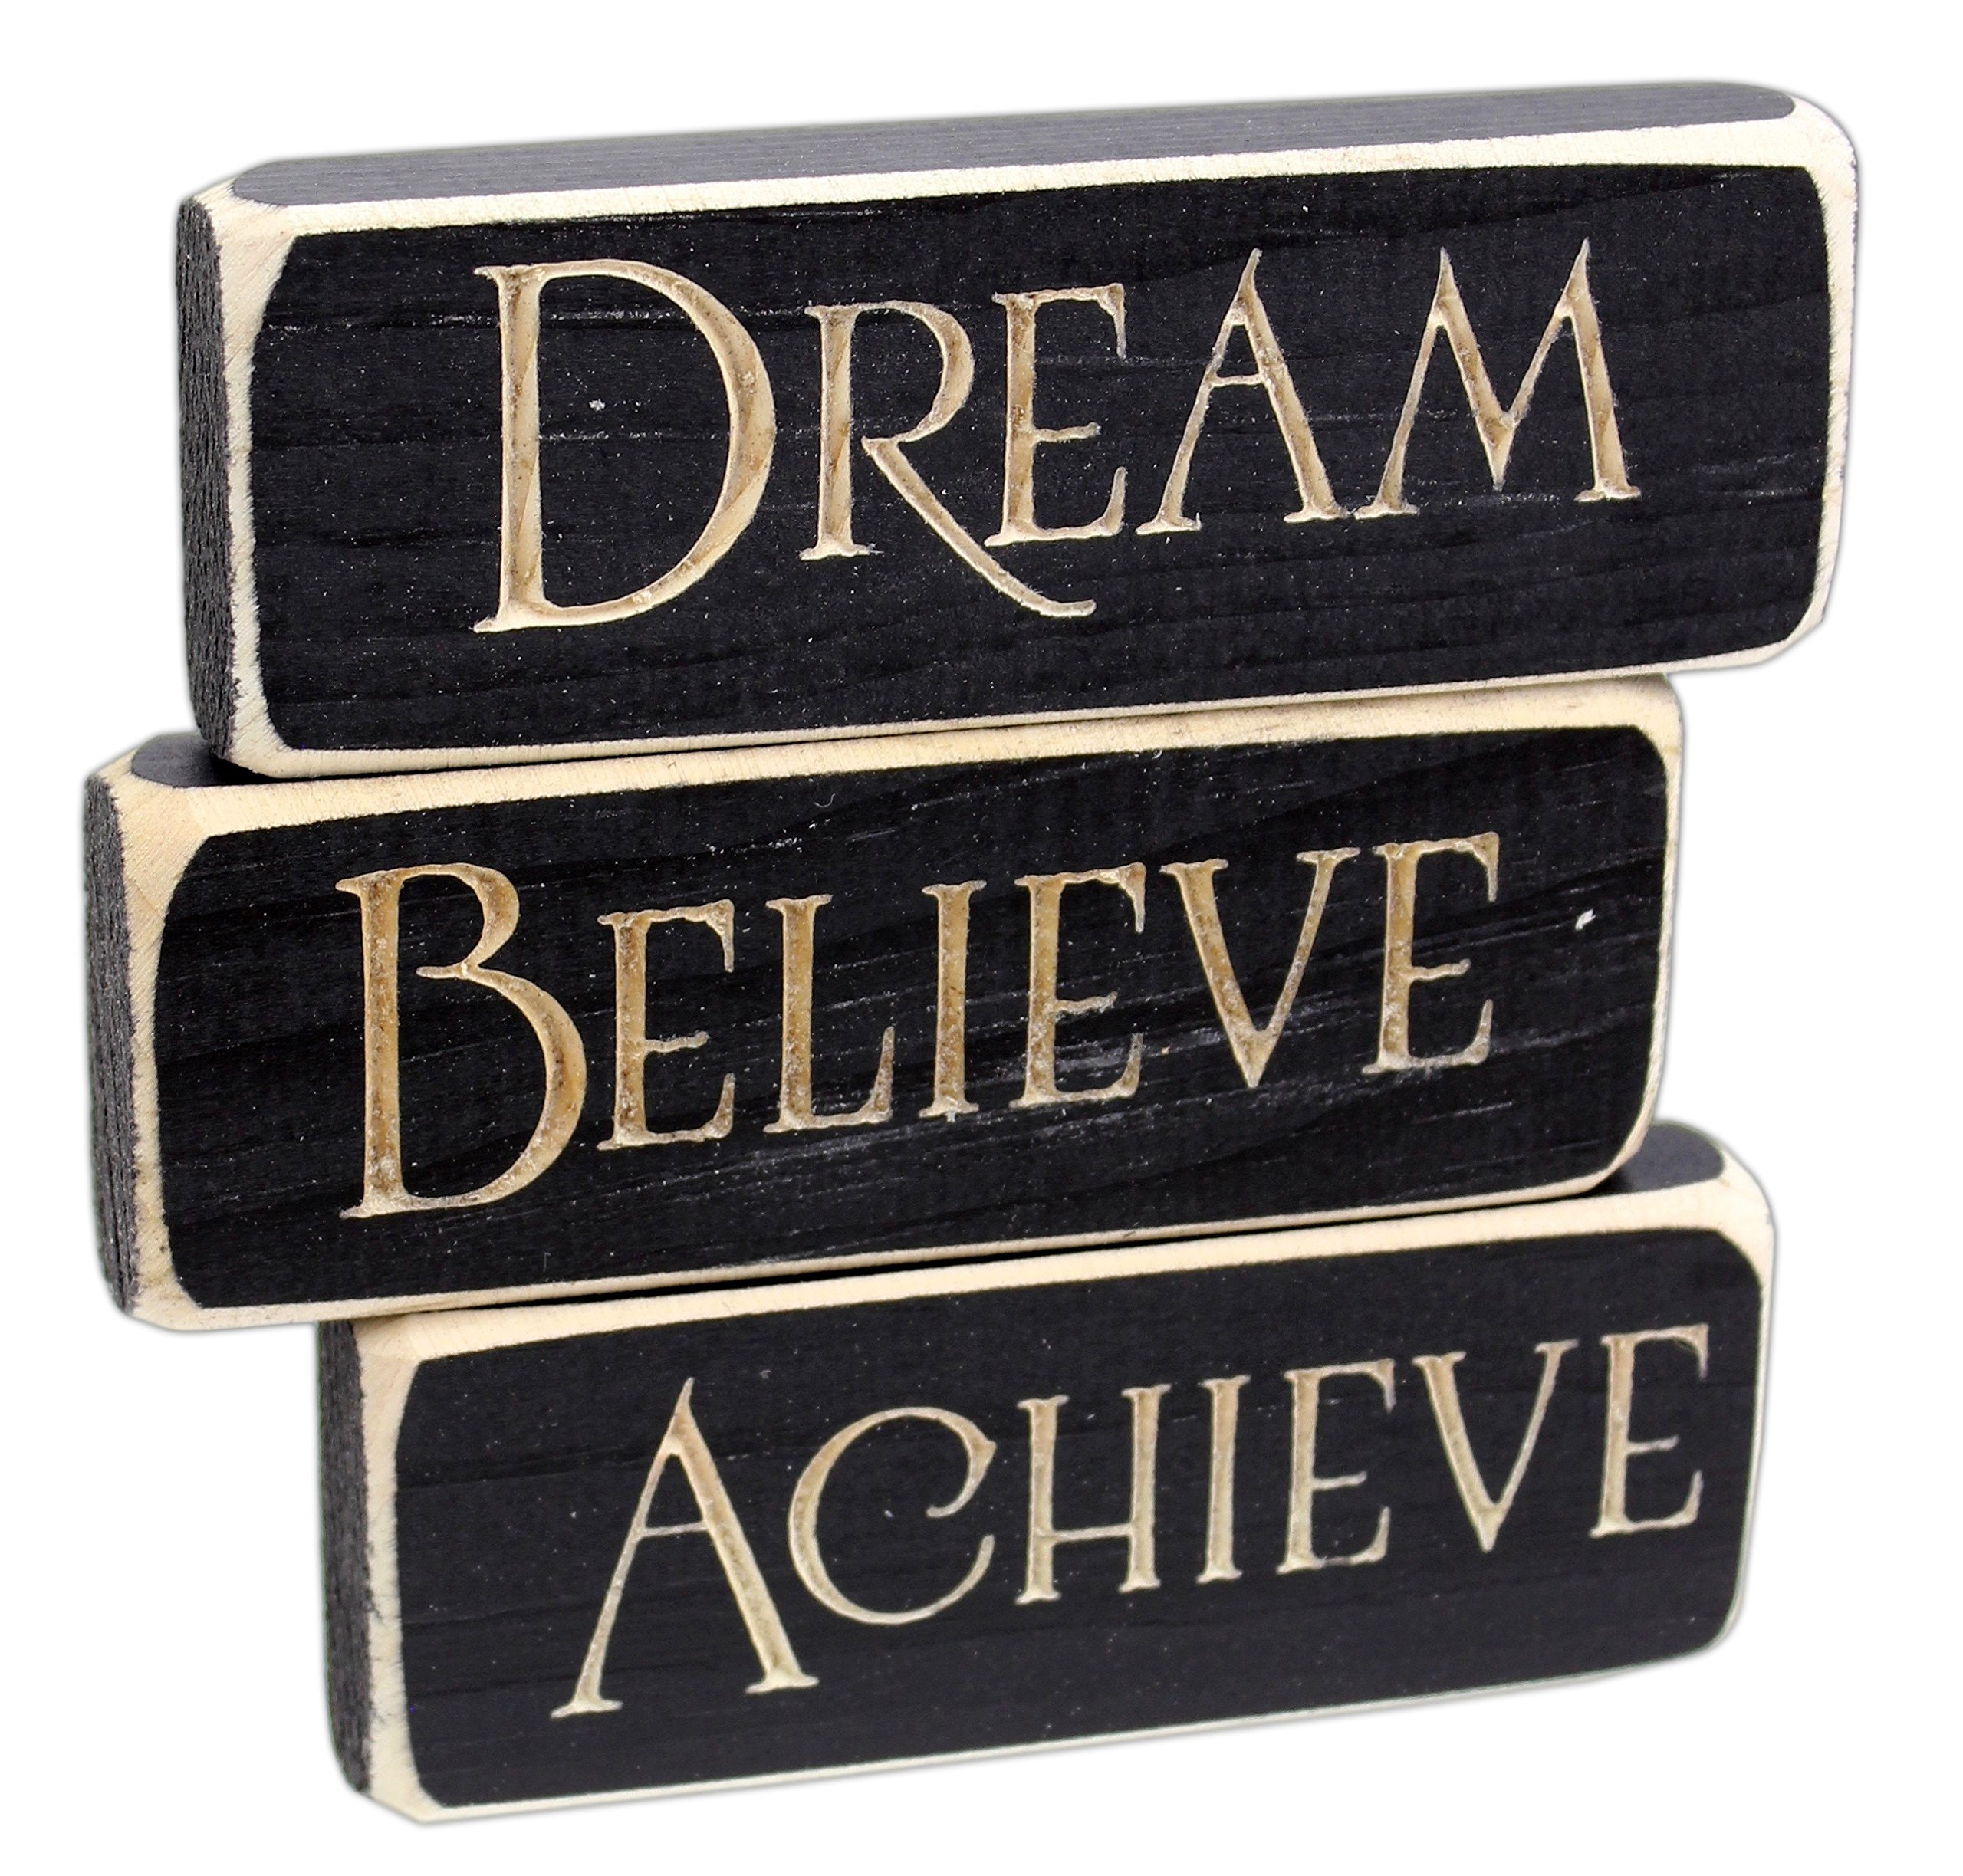 Heartwood Hollow Set of 3 5'' x 1.5'' Inspirational Engraved Wood Block Signs (Achieve Dream Believe)